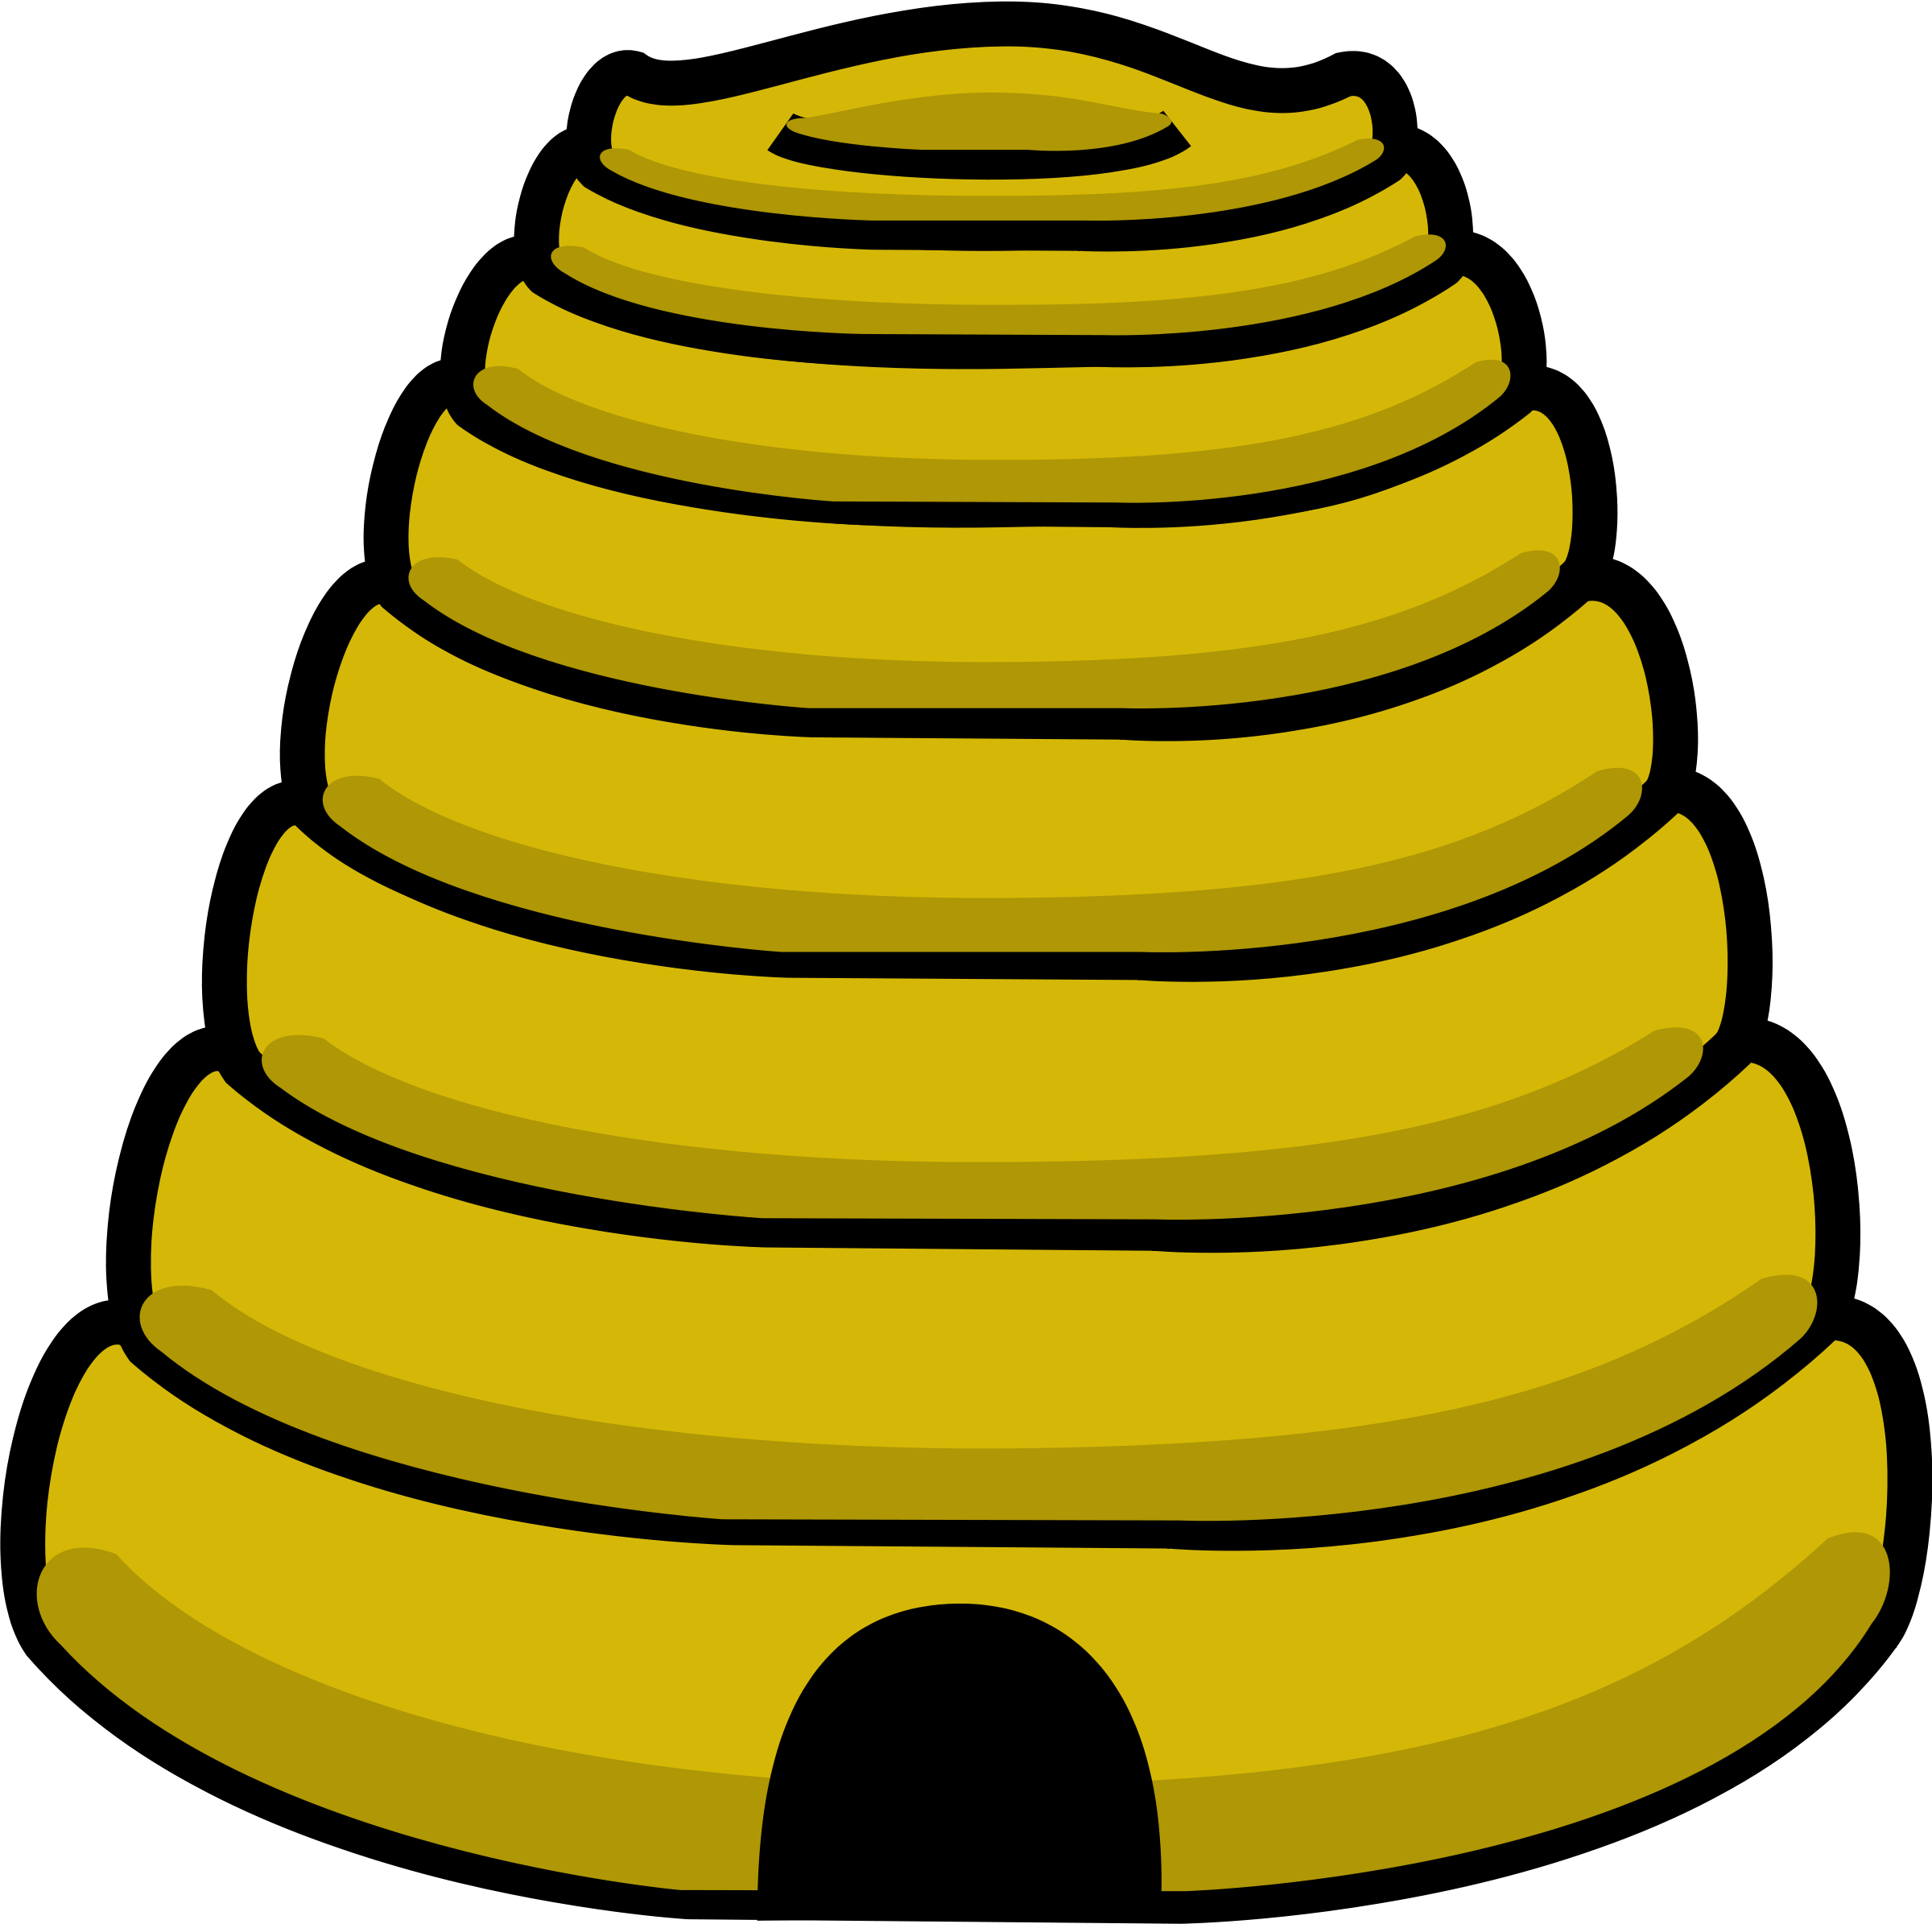 Free Bee Hive Images, Download Free Clip Art, Free Clip Art on.